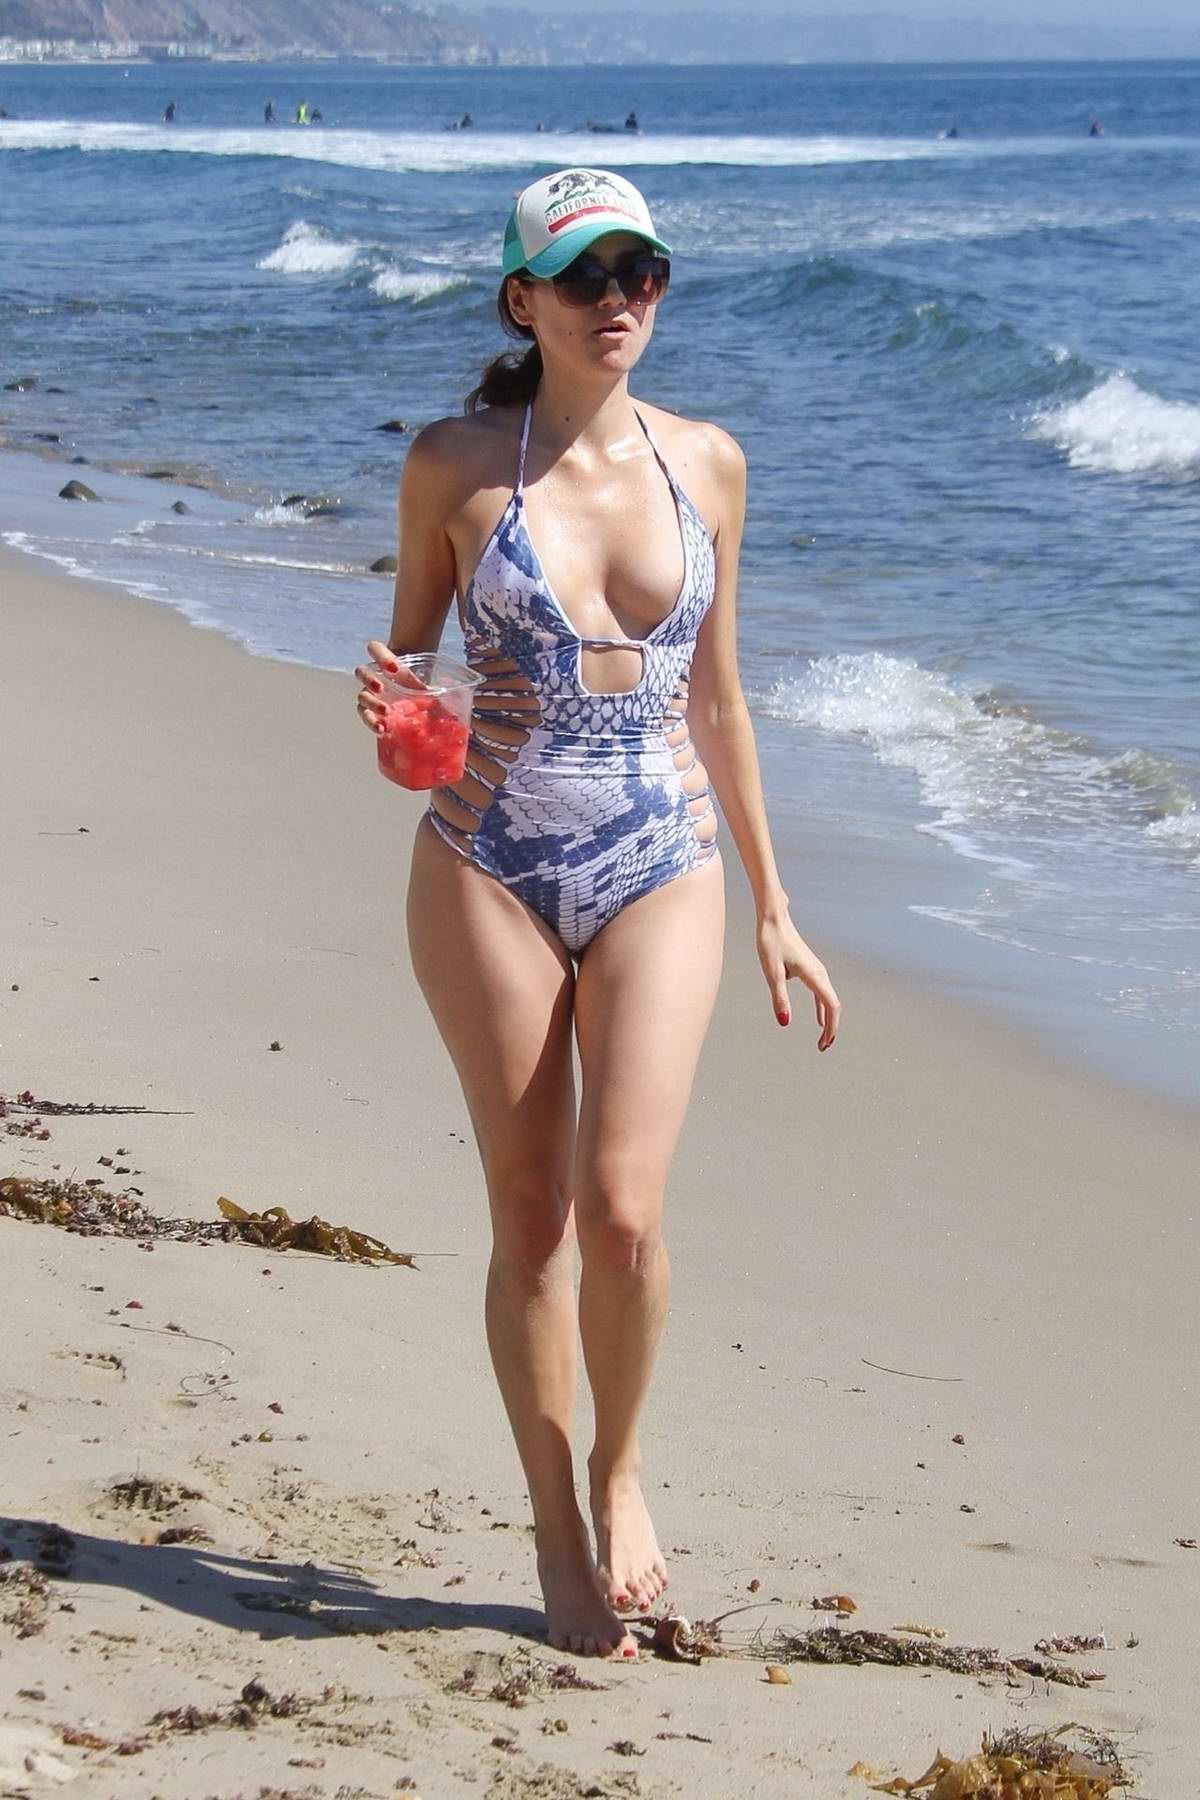 Blanca Blanco wears a blue and white patterned swimsuit while enjoying some watermelon on the beach in Malibu, California